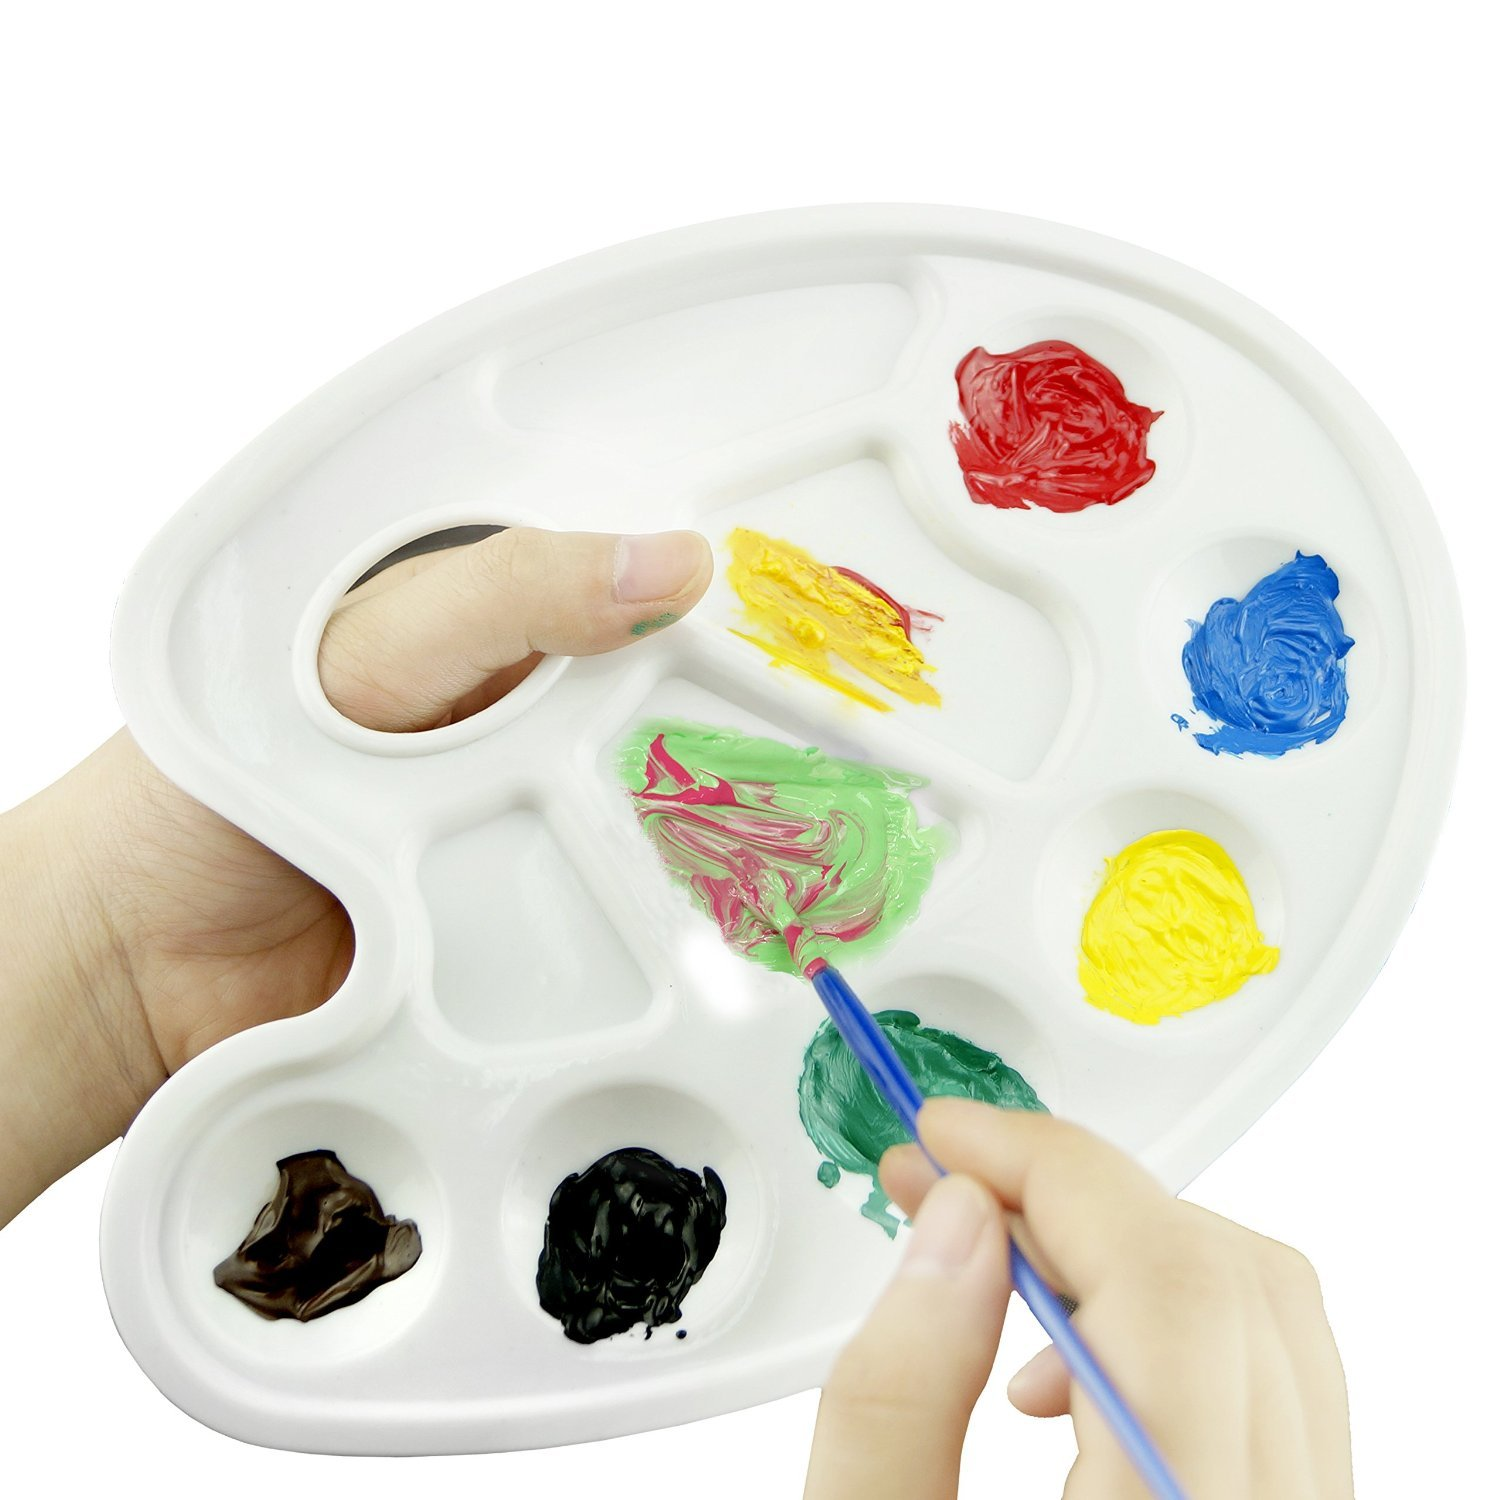 Amazon.com : Art Alternatives Paint Tray, 10 Wells with Thumb Hole ...